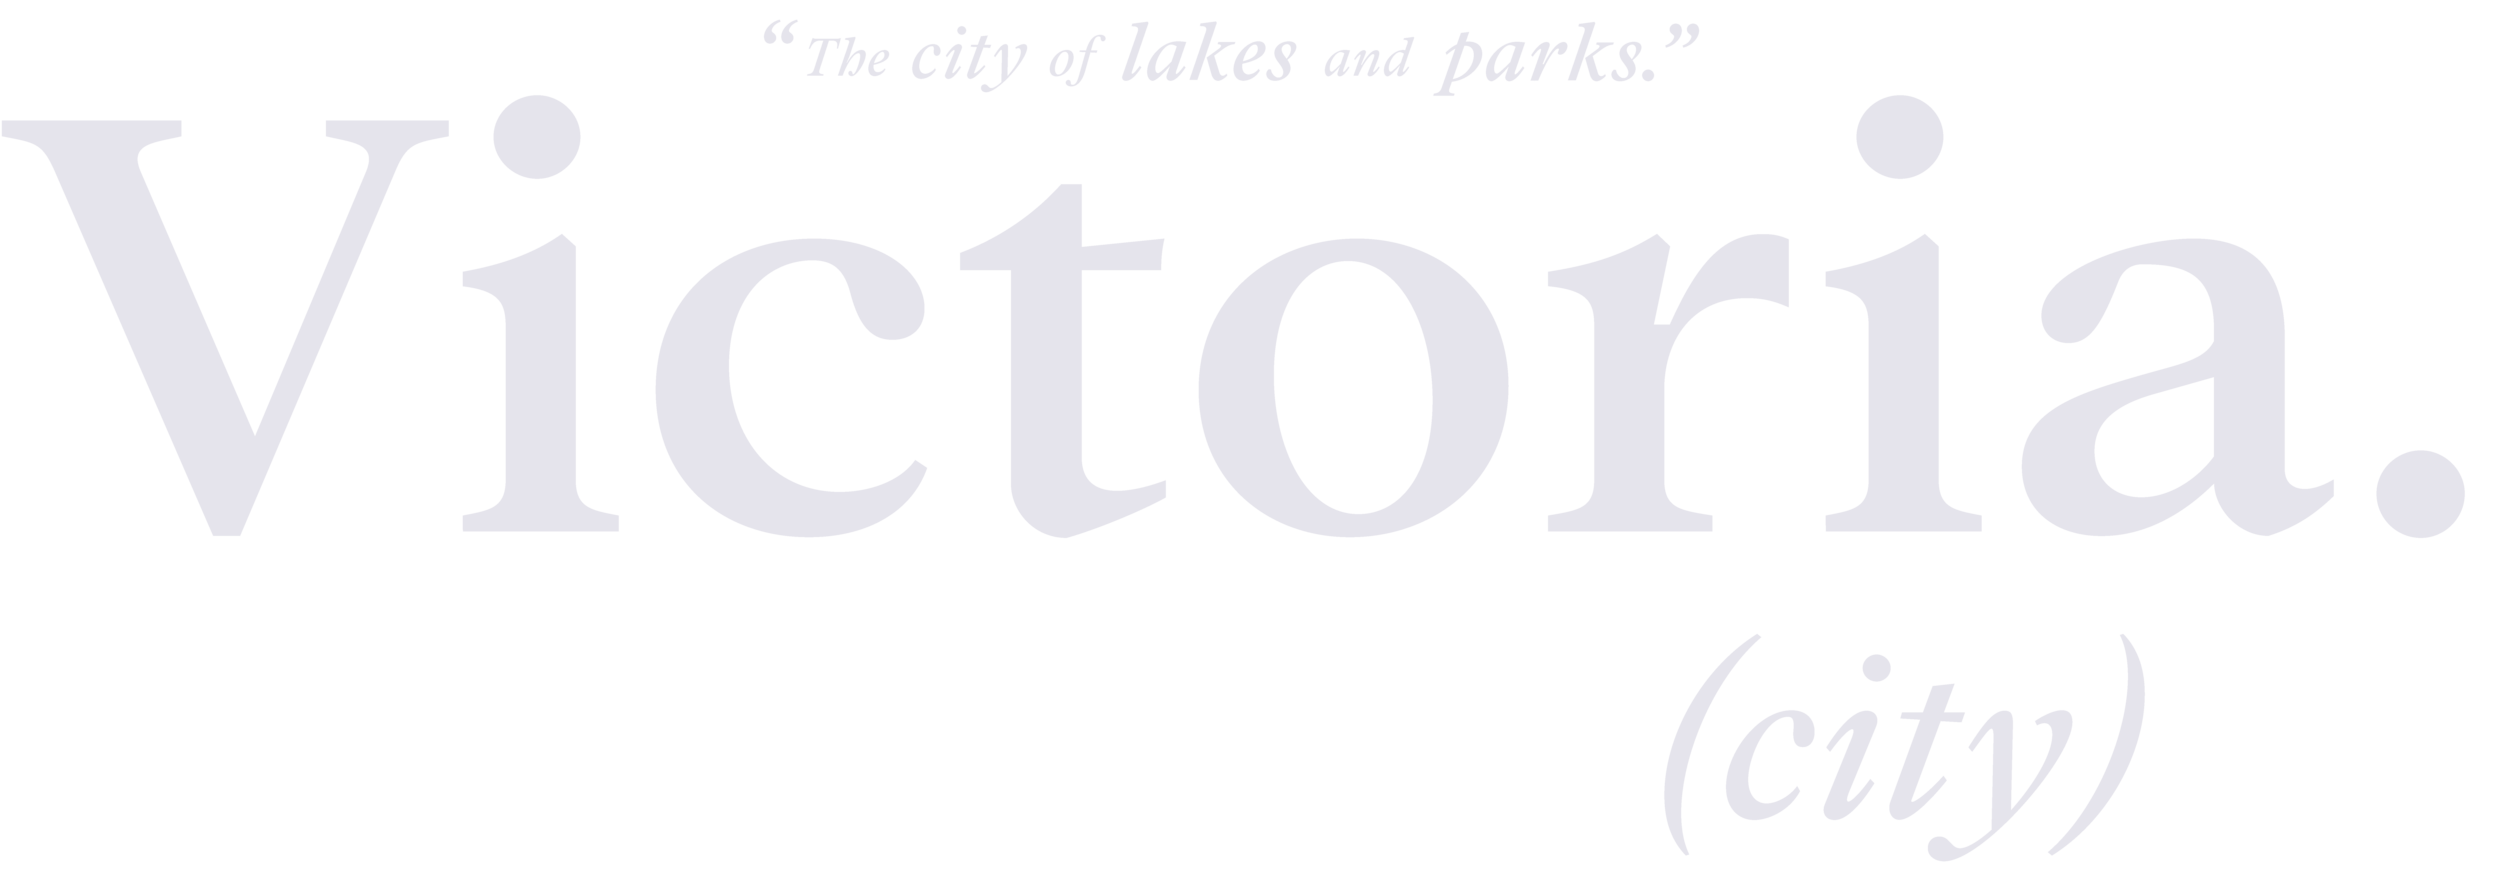 CityofVictoriaWeb2.png